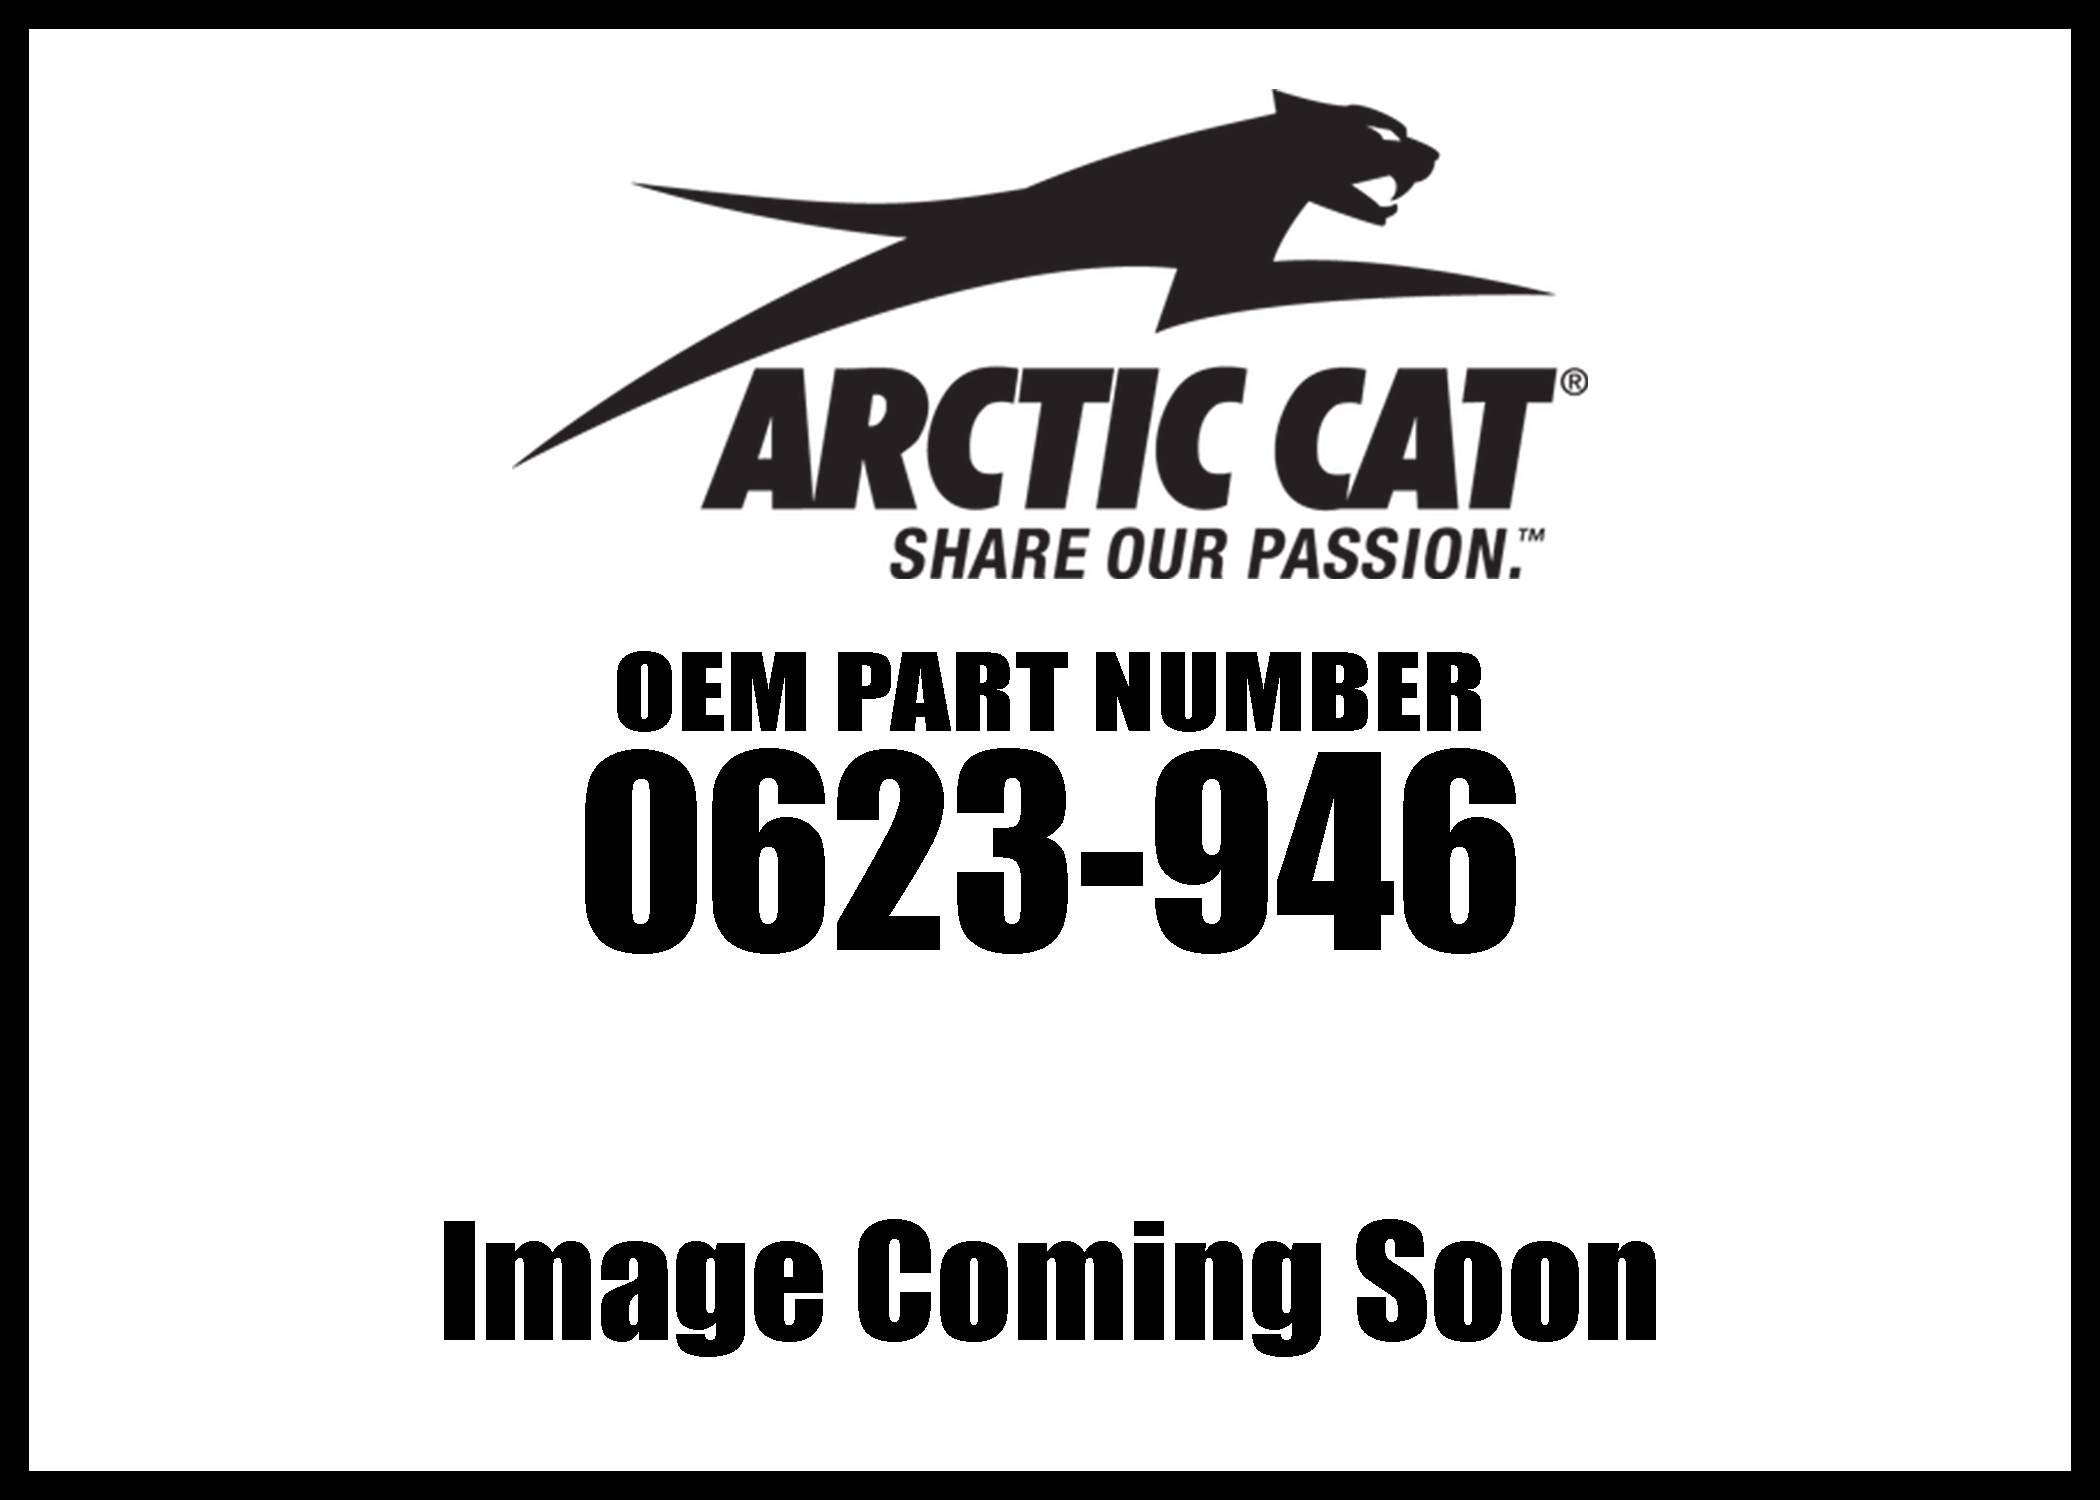 Arctic Cat 2003-2019 F570 M6 Efi 153 Ring Internal Retaining #165 0623-946 New Oem